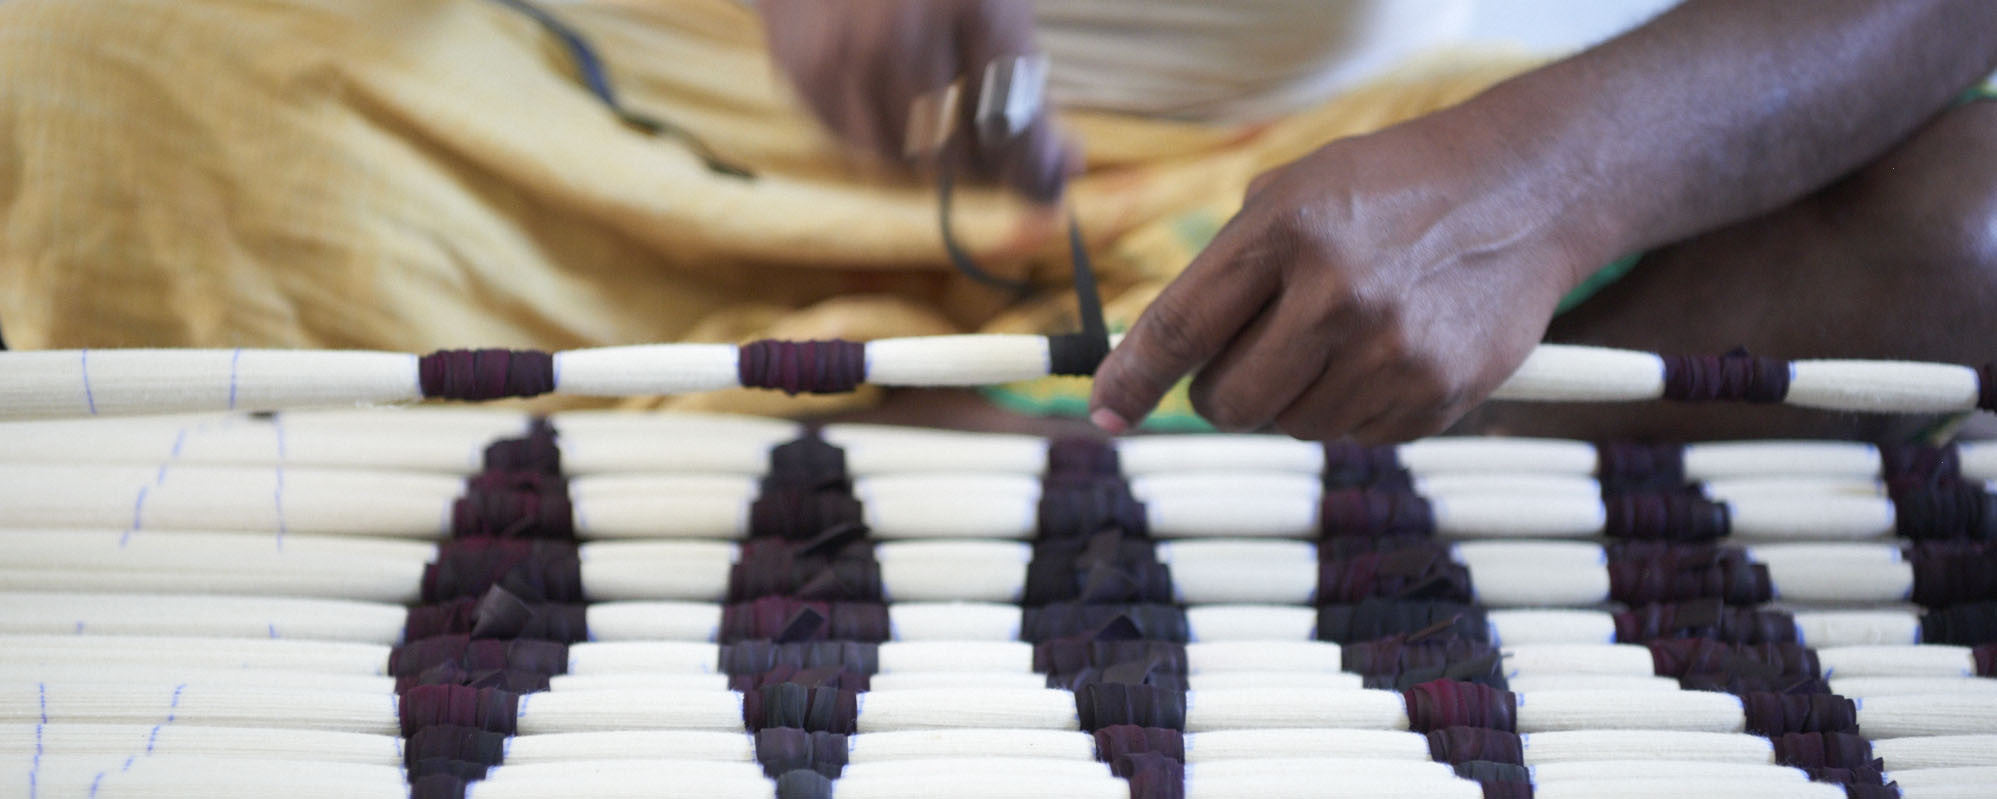 Ikat weaving in India